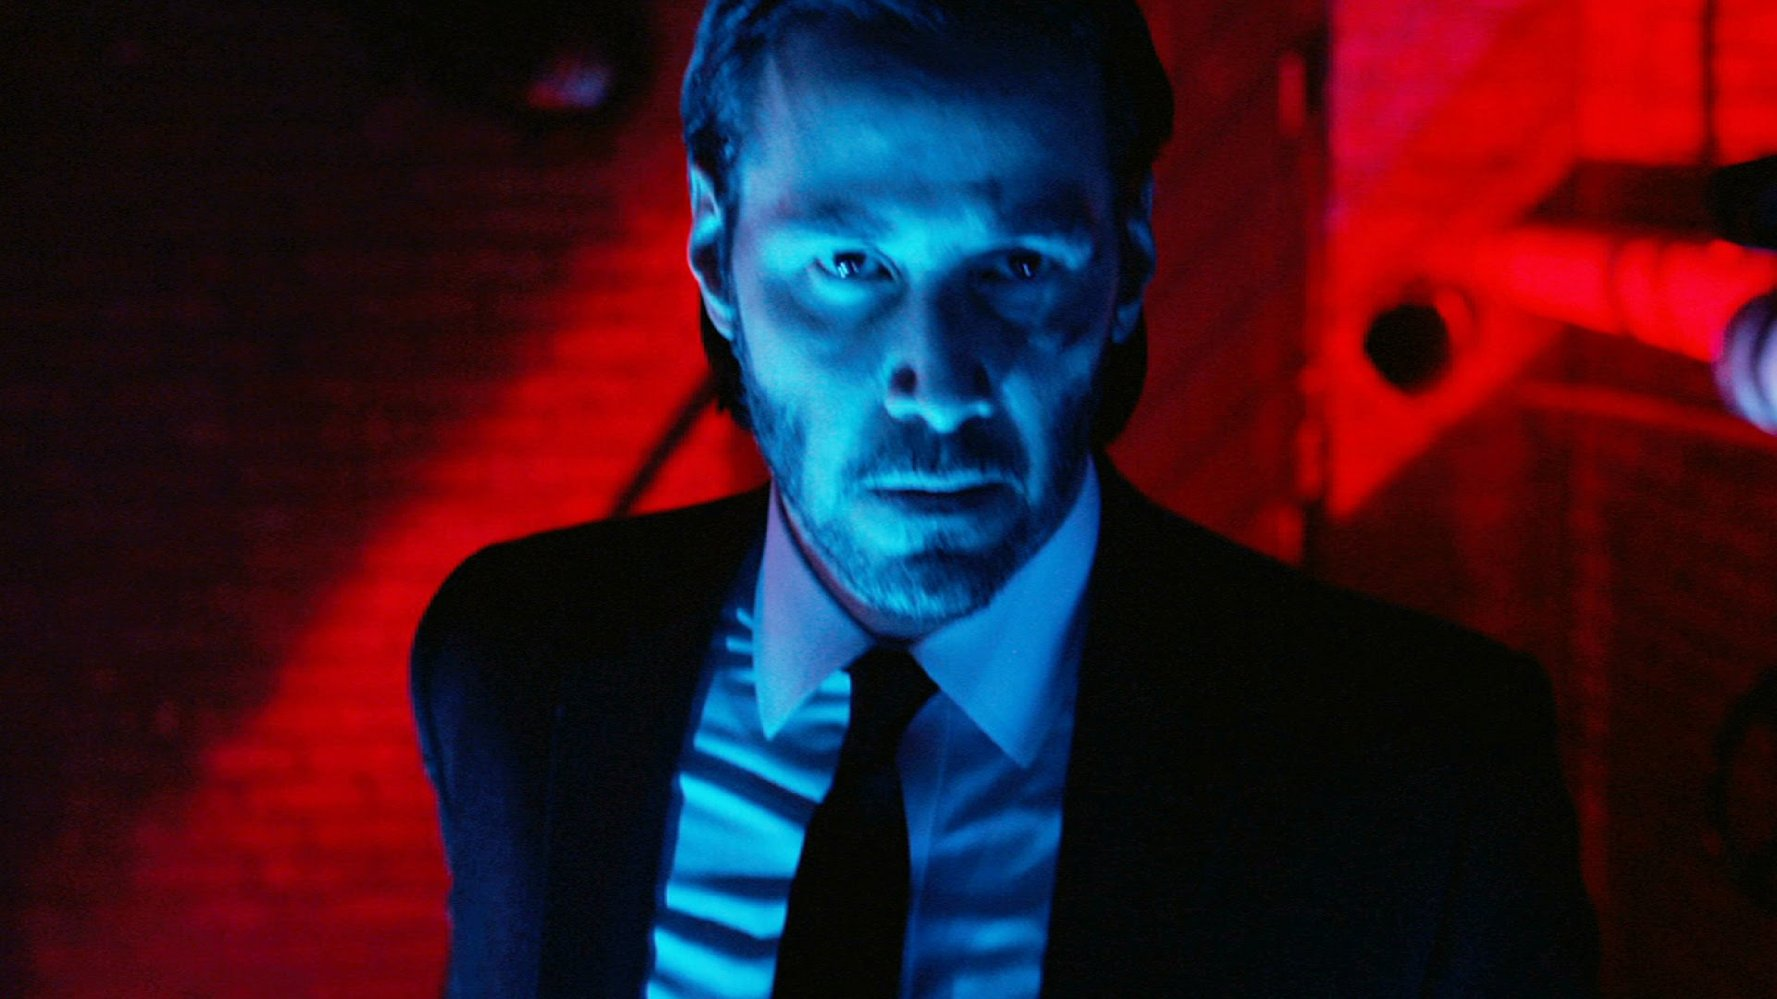 john wick images john wick 2014 hd wallpaper and background photos